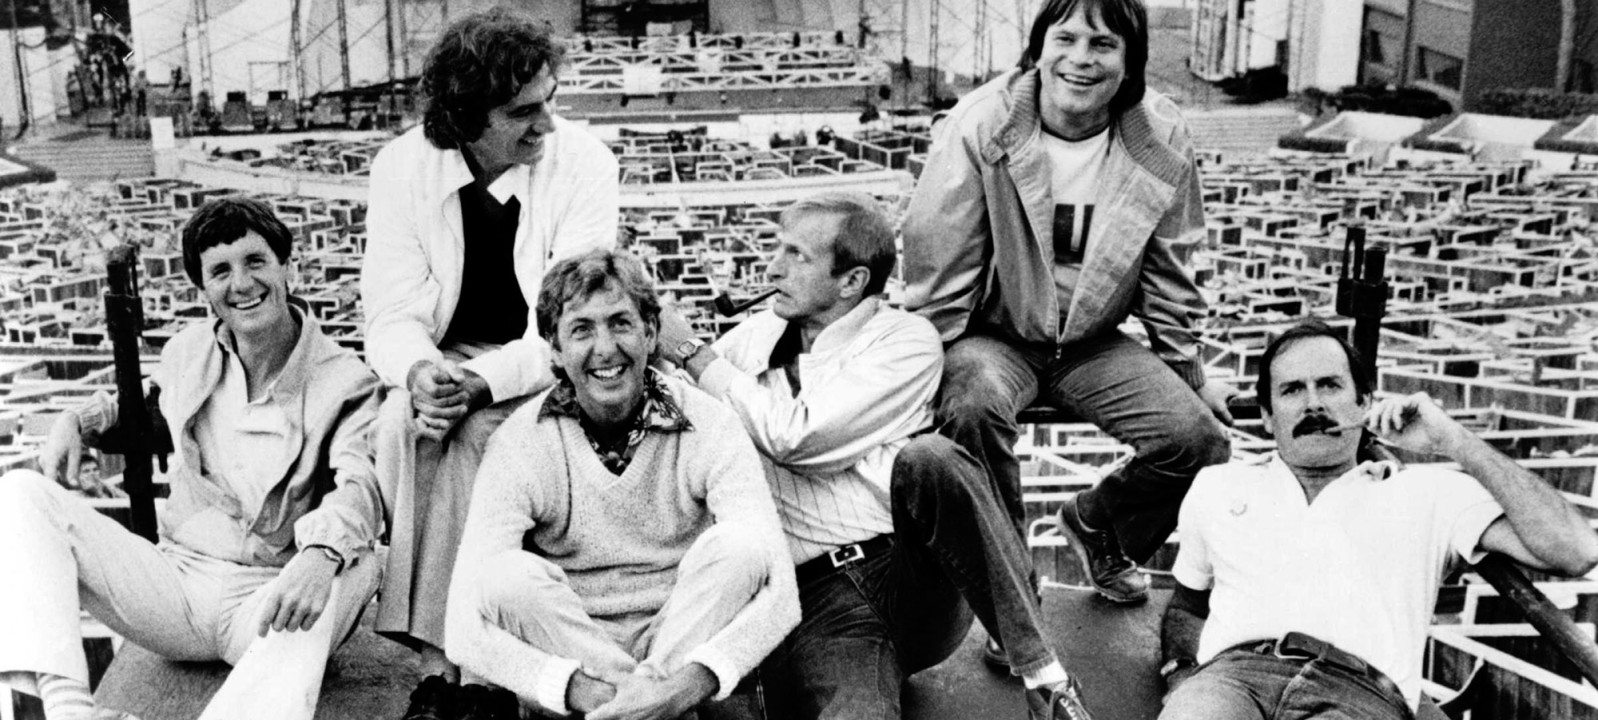 The 'Monty Python' team (L-R: Michael Palin, Terry Jones, Eric Idle, Graham Chapman, Terry Gilliam, John Cleese)